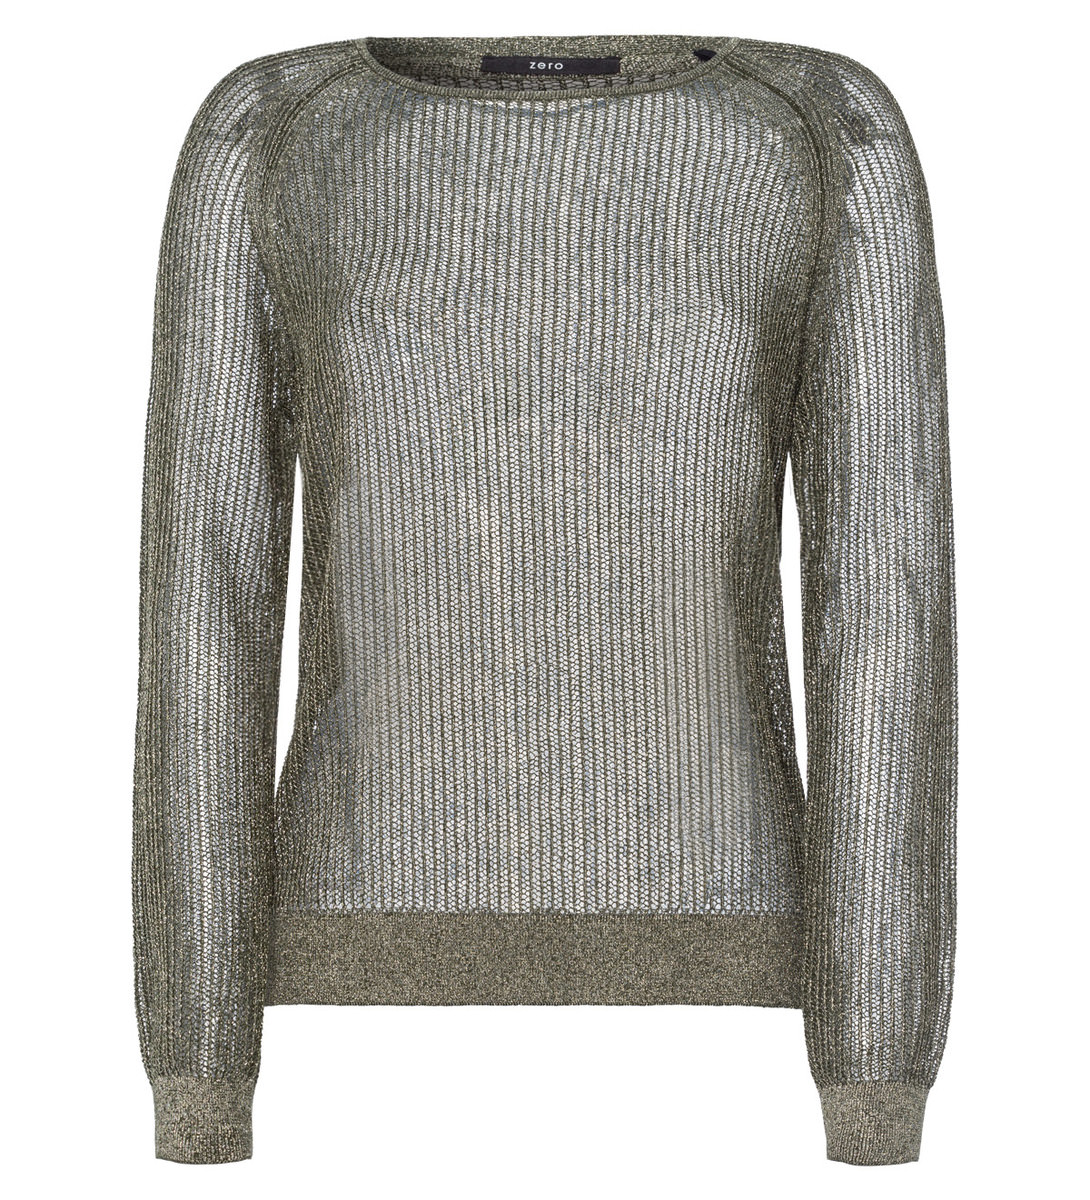 Pullover in Netzoptik in cypress olive